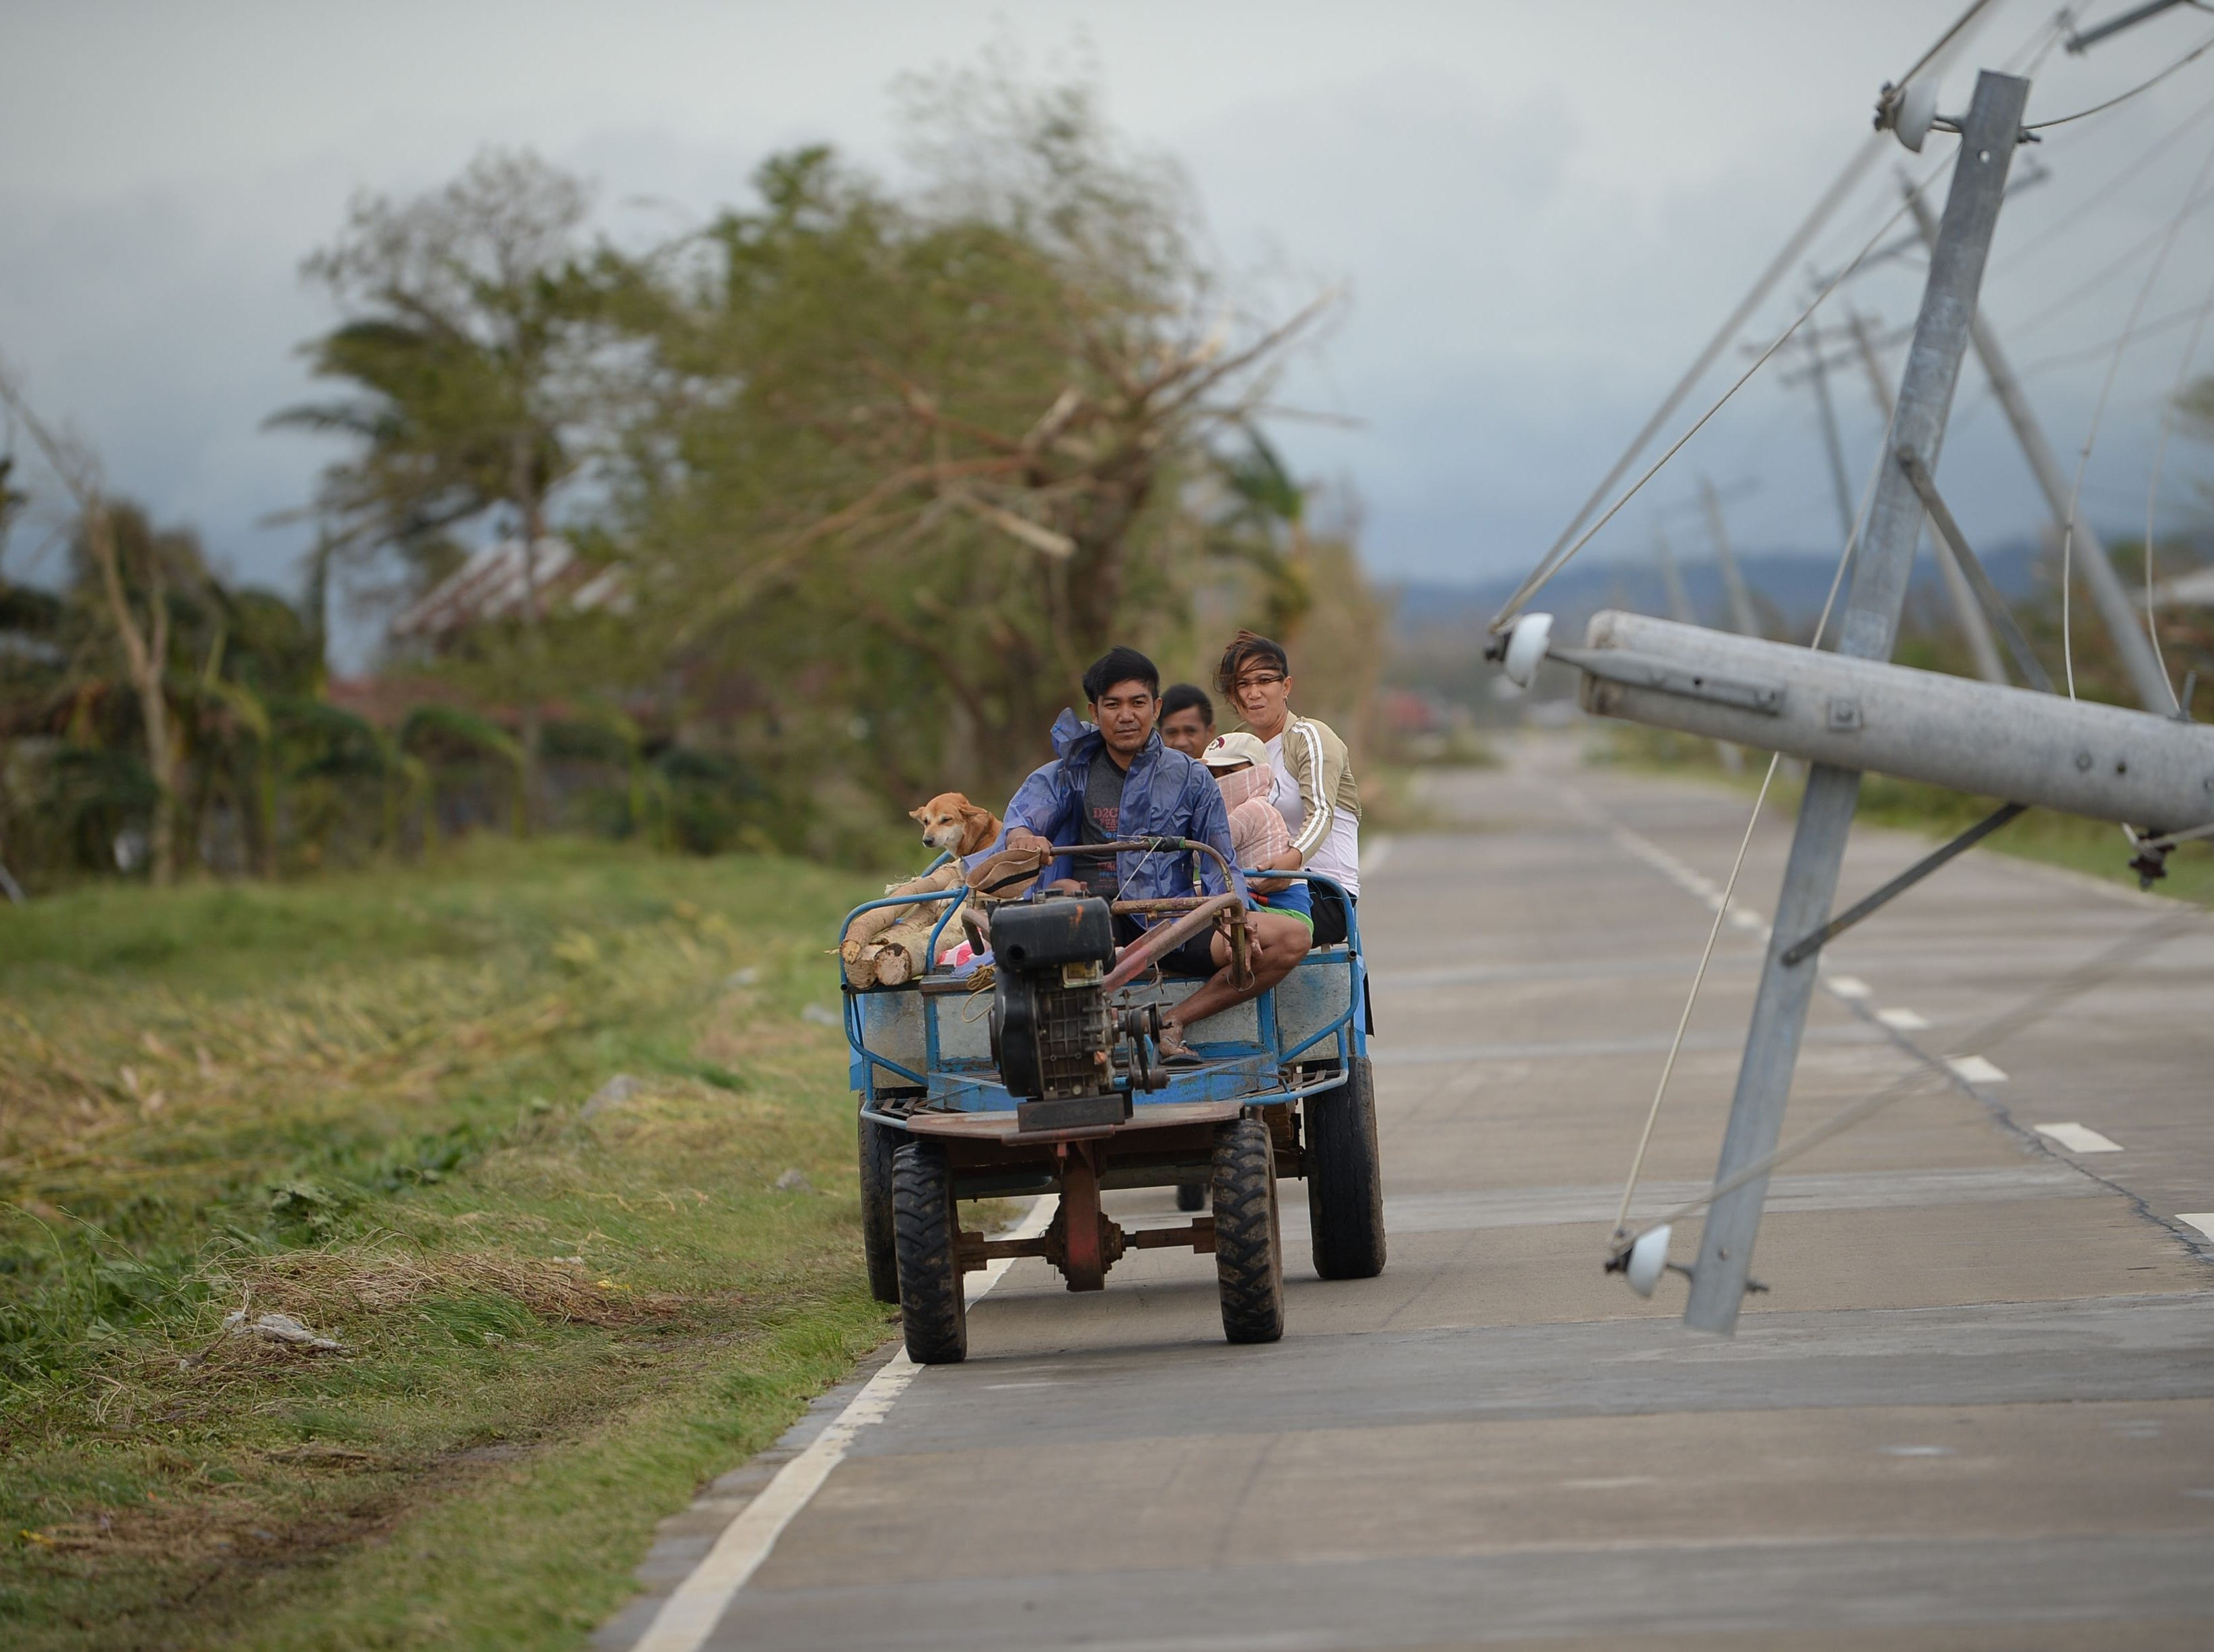 A family commute on an improvised vehicle past an electric post toppled by strong winds from Super Typhoon Mangkhut in Baggao, Cagayan province on Sept. 15, 2018.